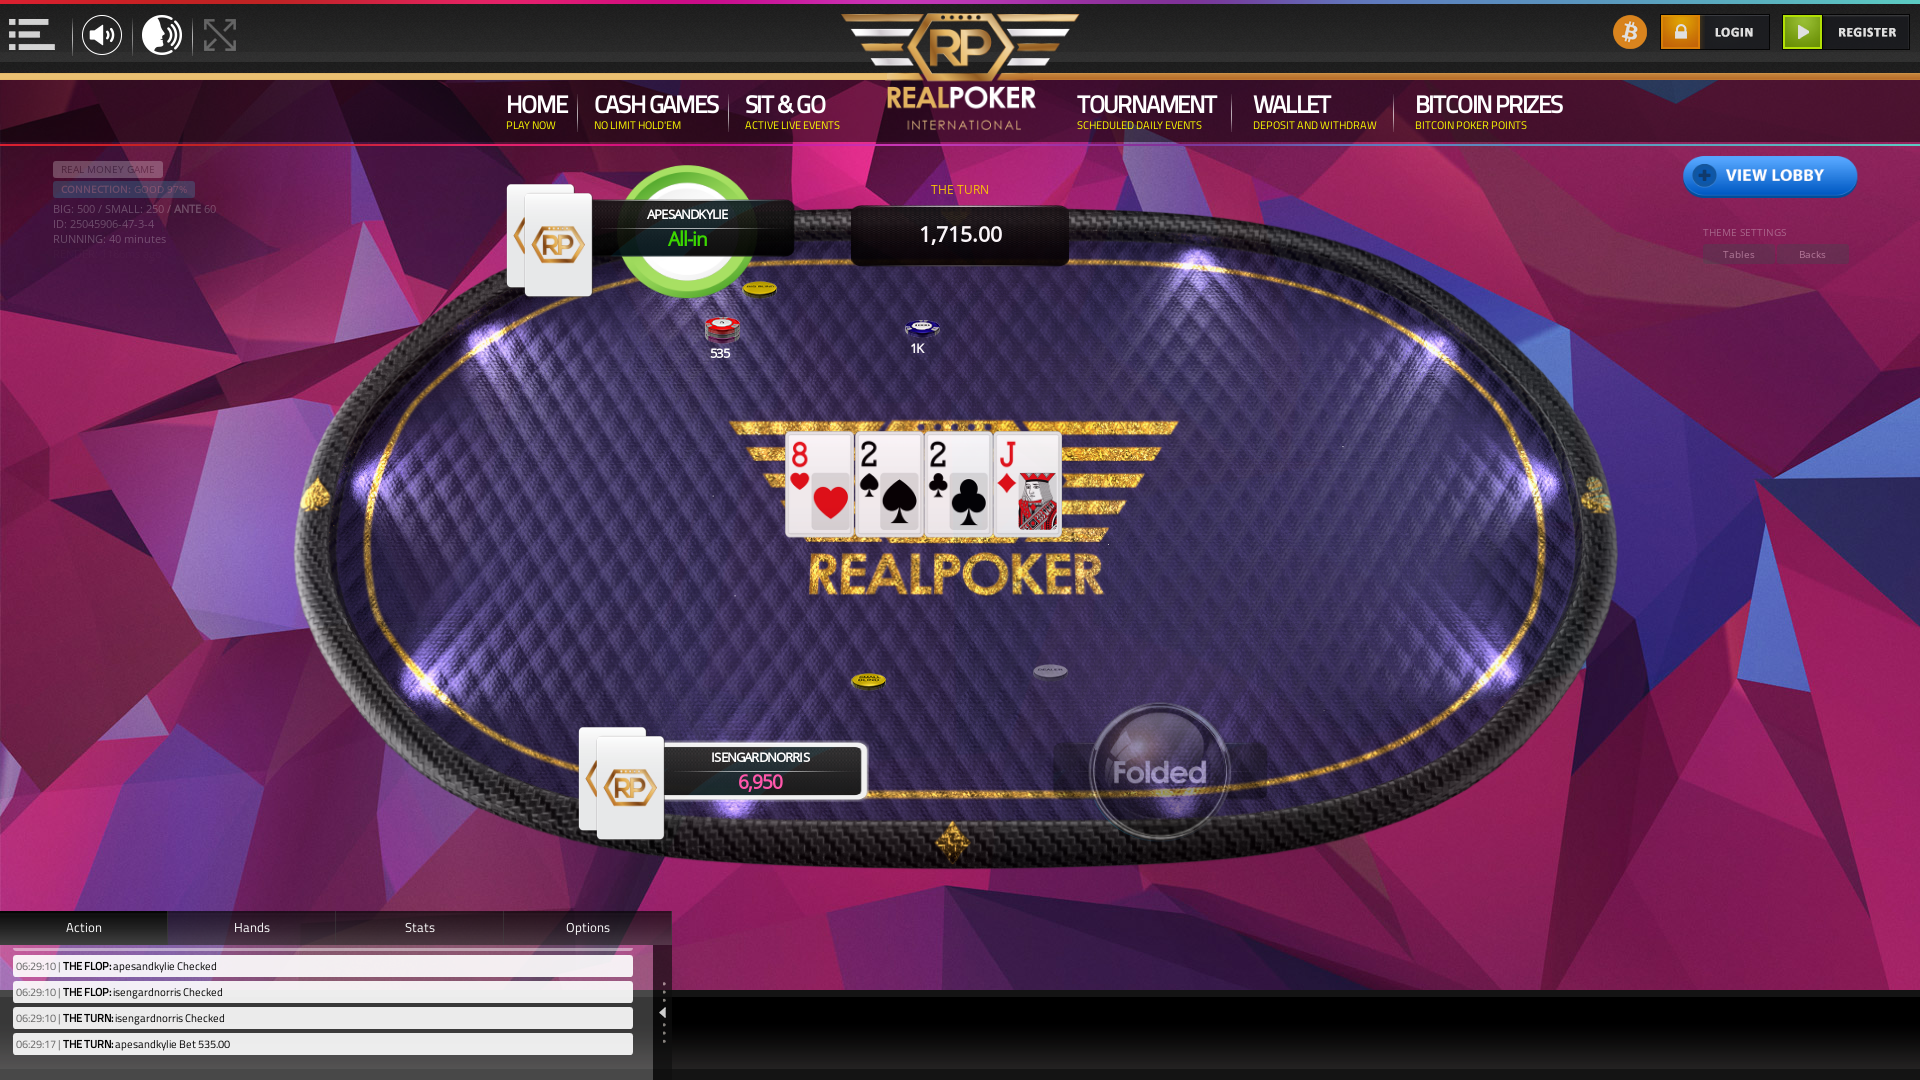 10 player texas holdem table at real poker with the table id 25045906